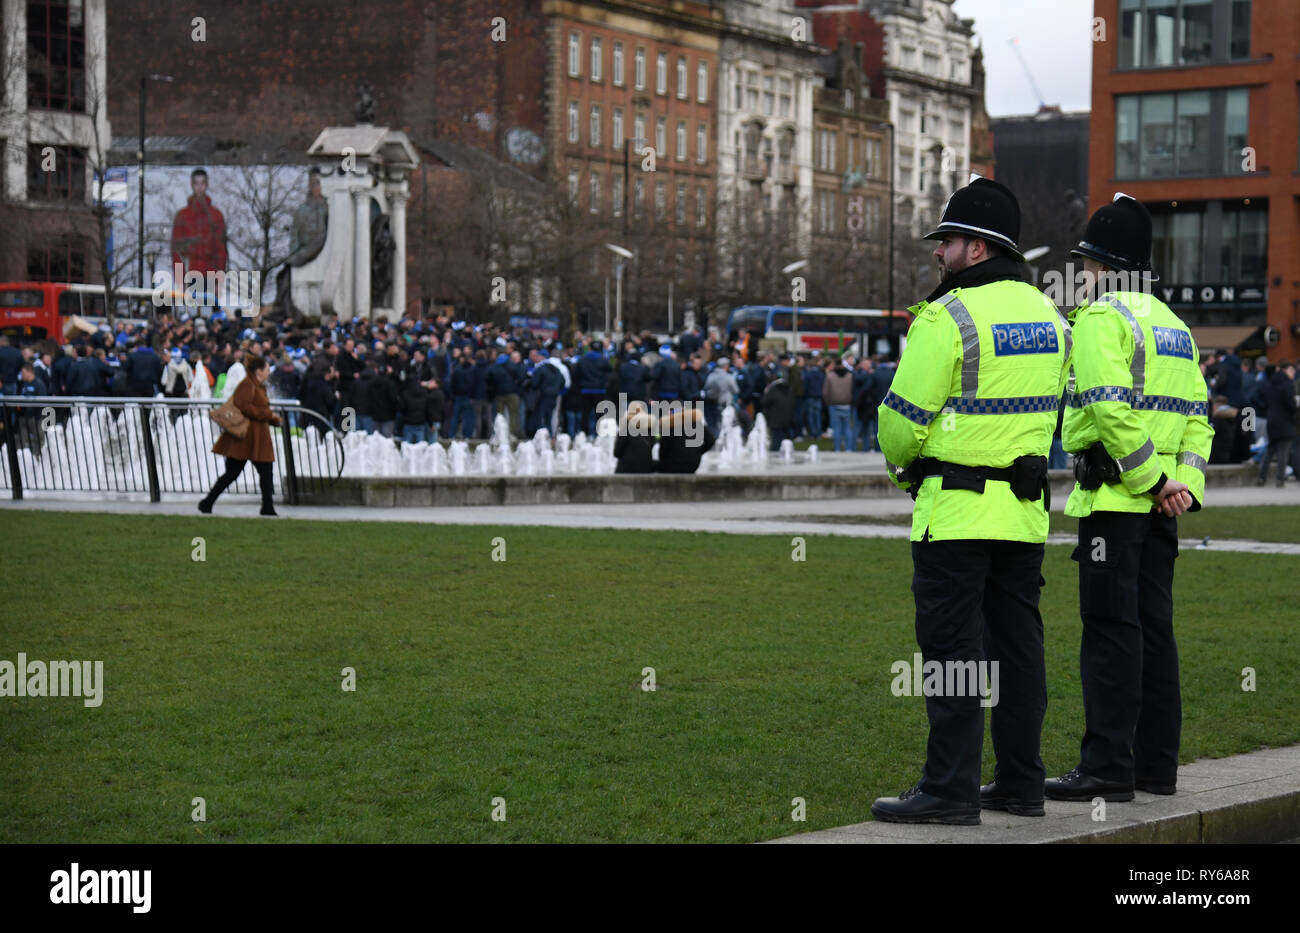 Manchester, UK. 12th Mar, 2019. Soccer: Champions League, Manchester City - FC Schalke 04, knockout round, round of sixteen, return match at Etihad Stadium. Policemen are watching fans of Schalke at Picadilly Gardens Square. Credit: Ina Fassbender/dpa/Alamy Live News - Stock Image